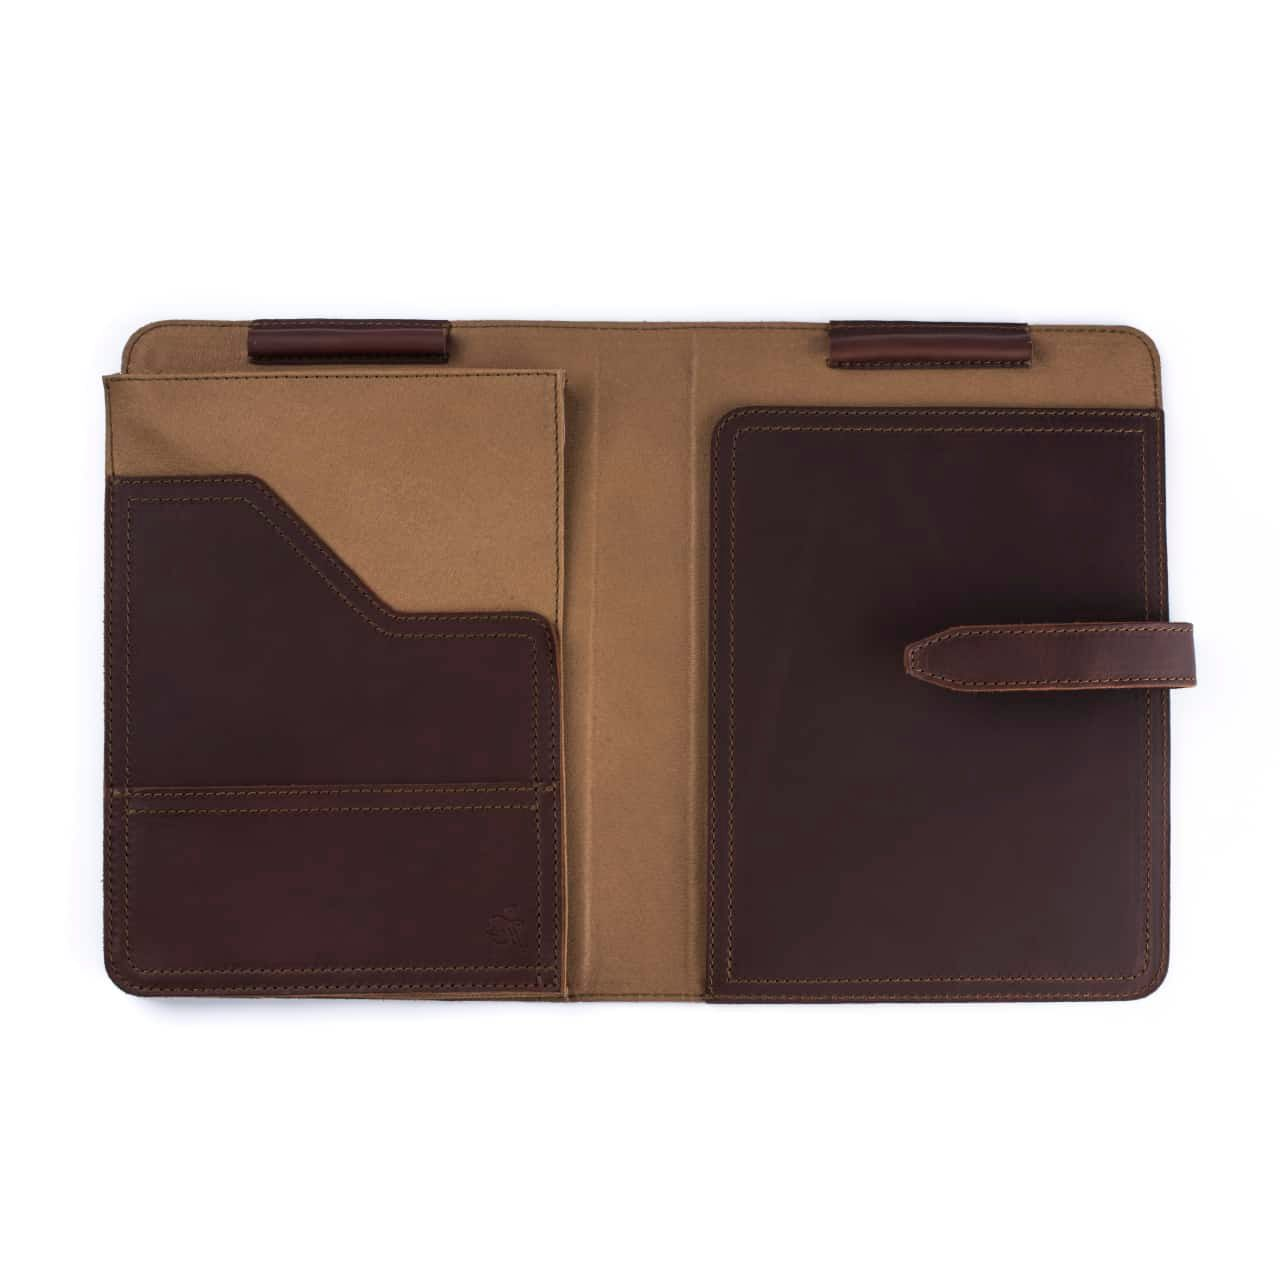 Leather Tablet Notepad Holder Open and Empty in the Color Chestnut